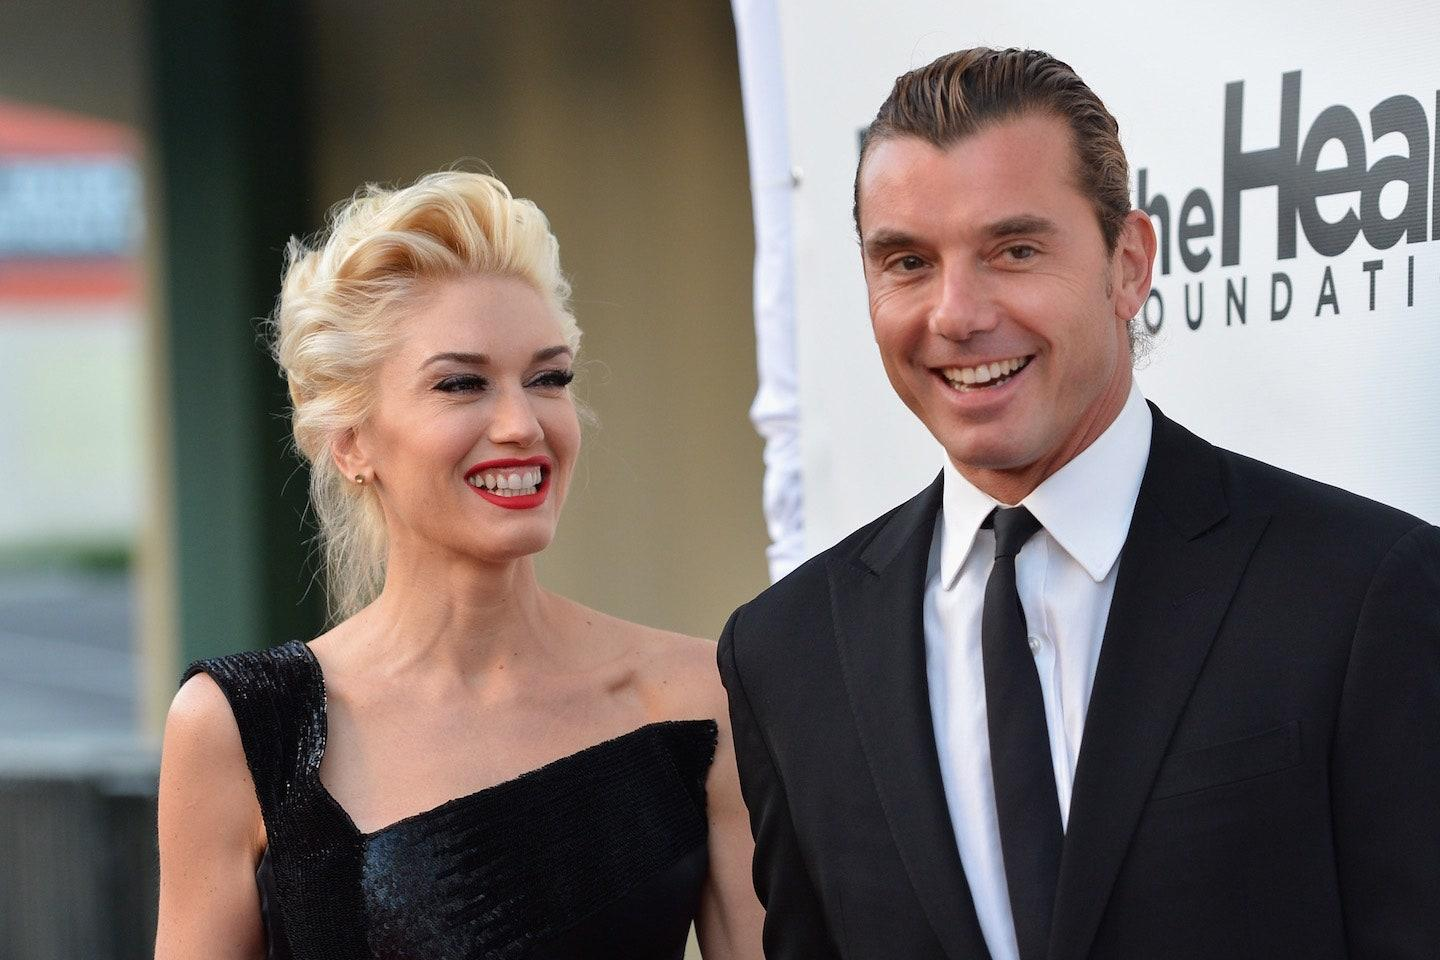 Gwen Stefani And Blake Shelton - Inside Their Relationship With Her Ex-Husband Gavin Rossdale!